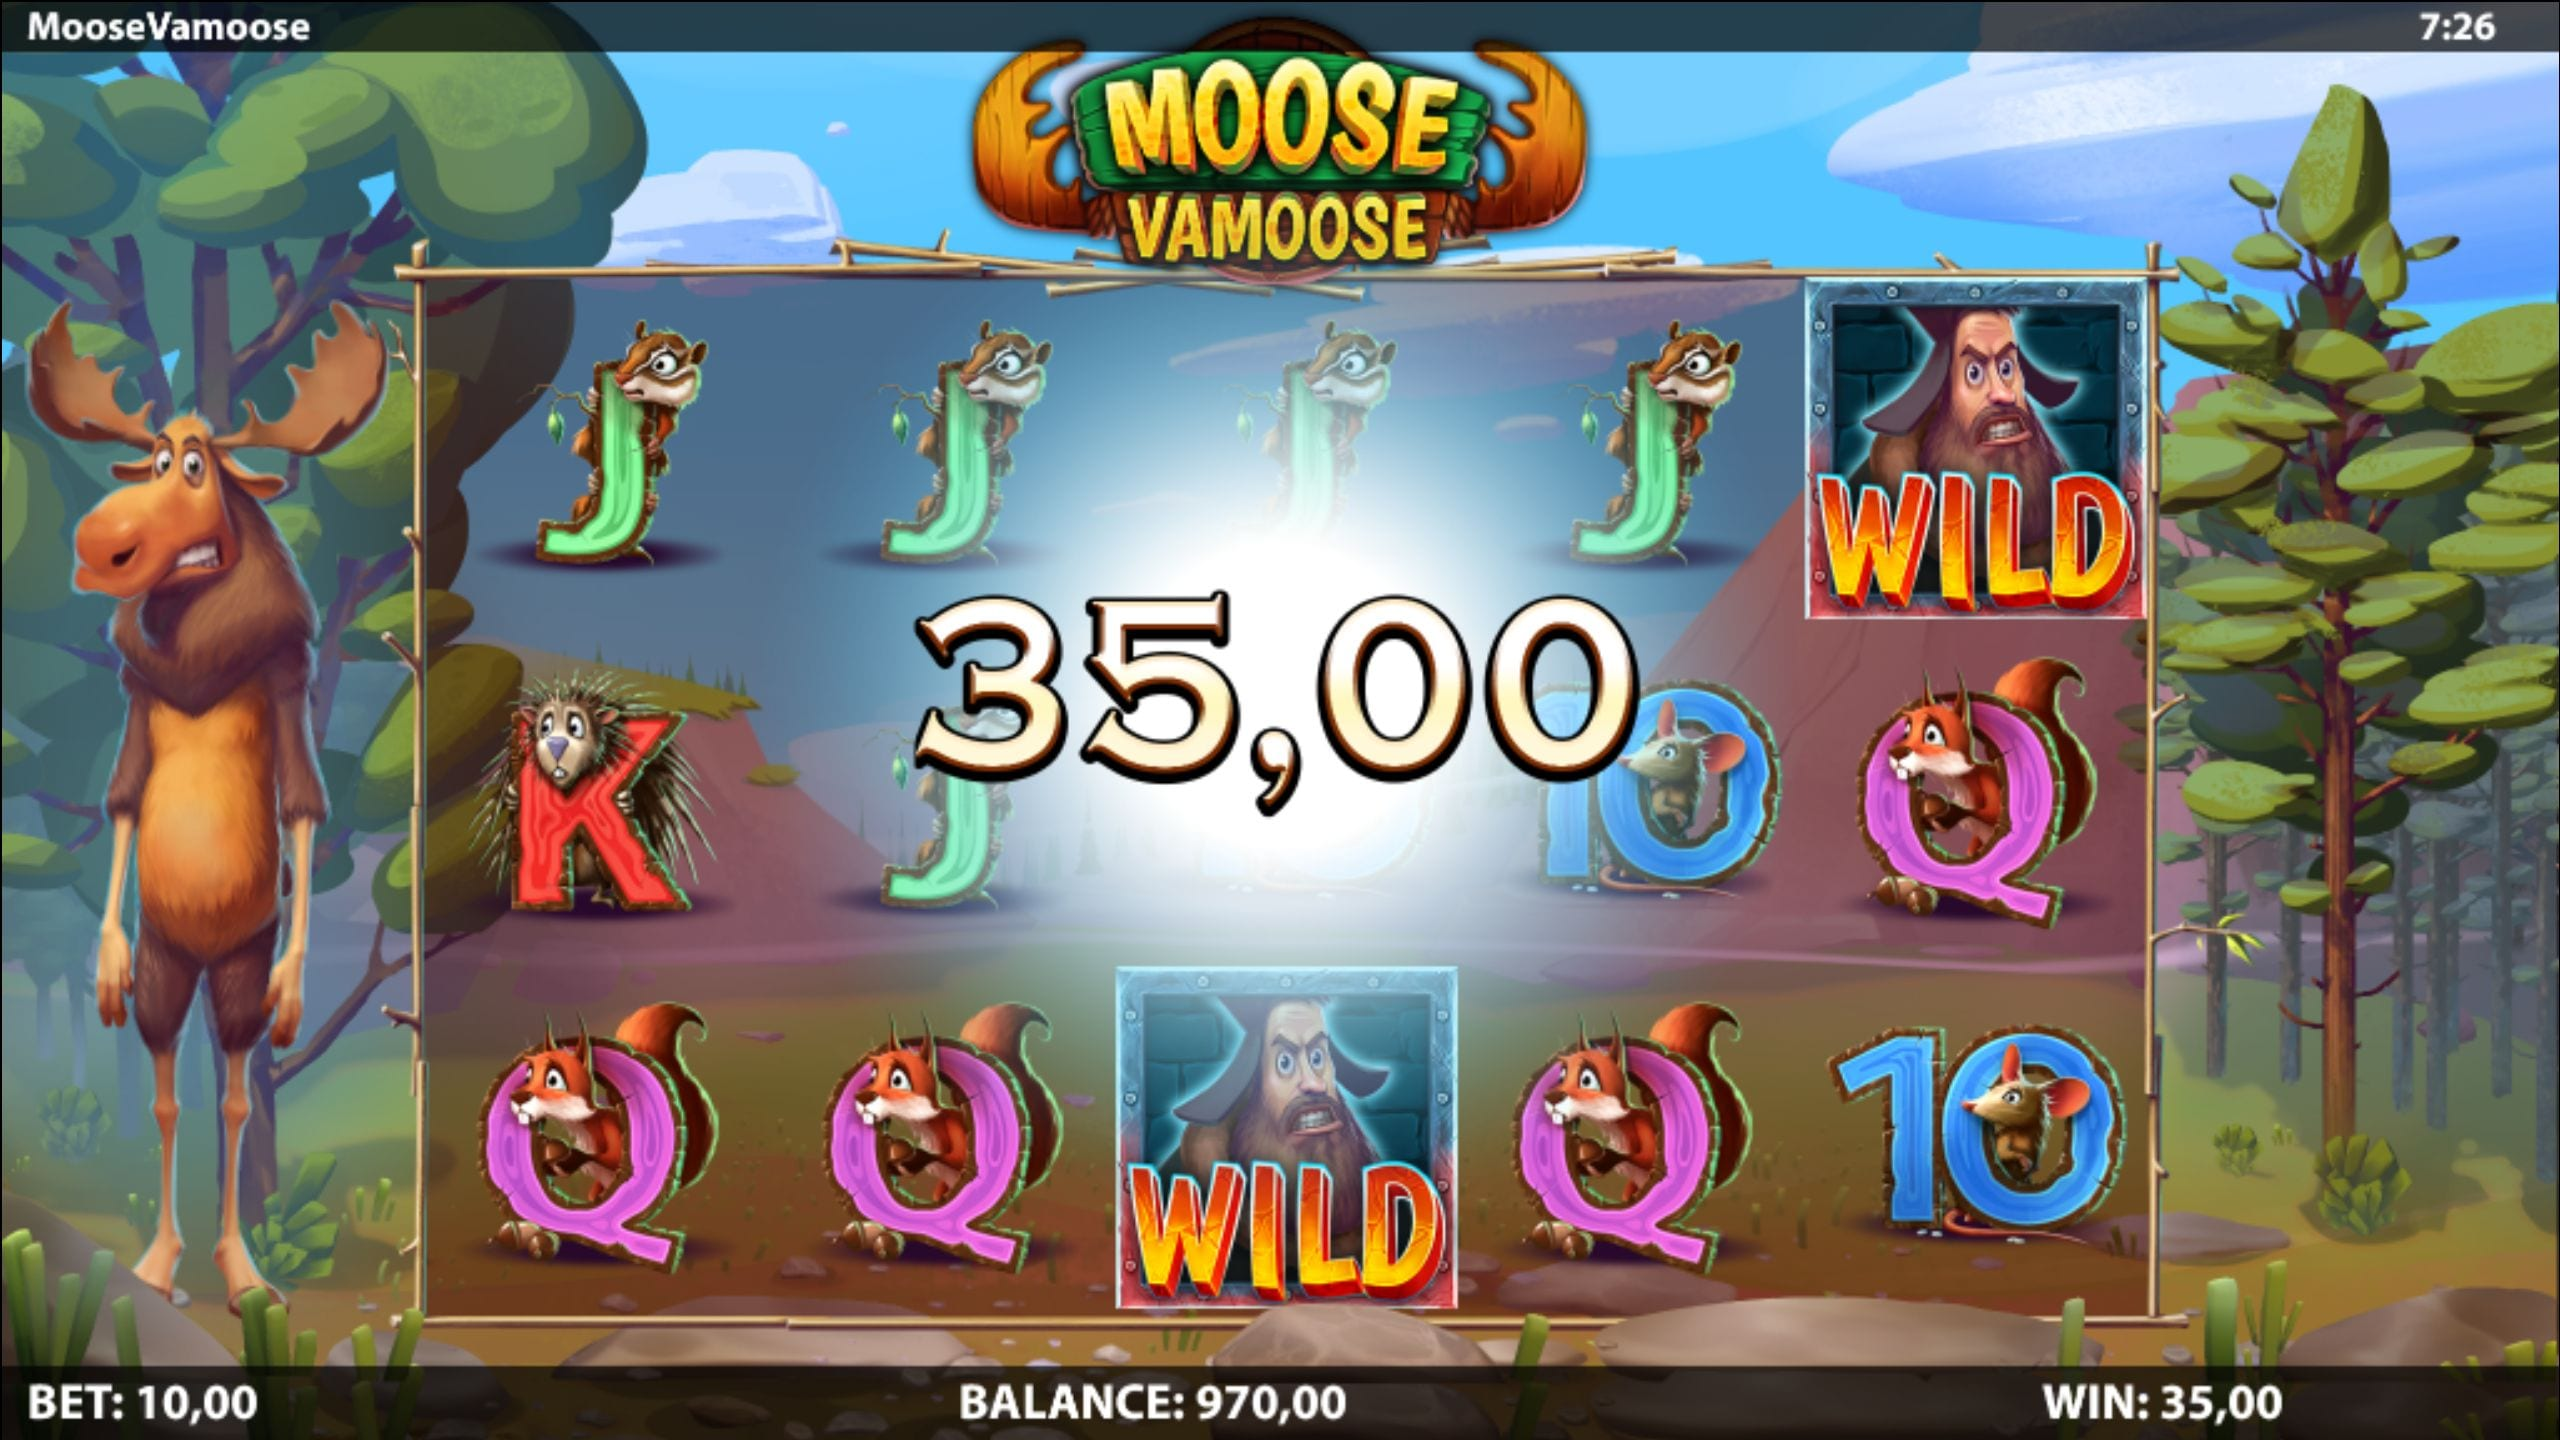 Moose Vamoose Slot Game win